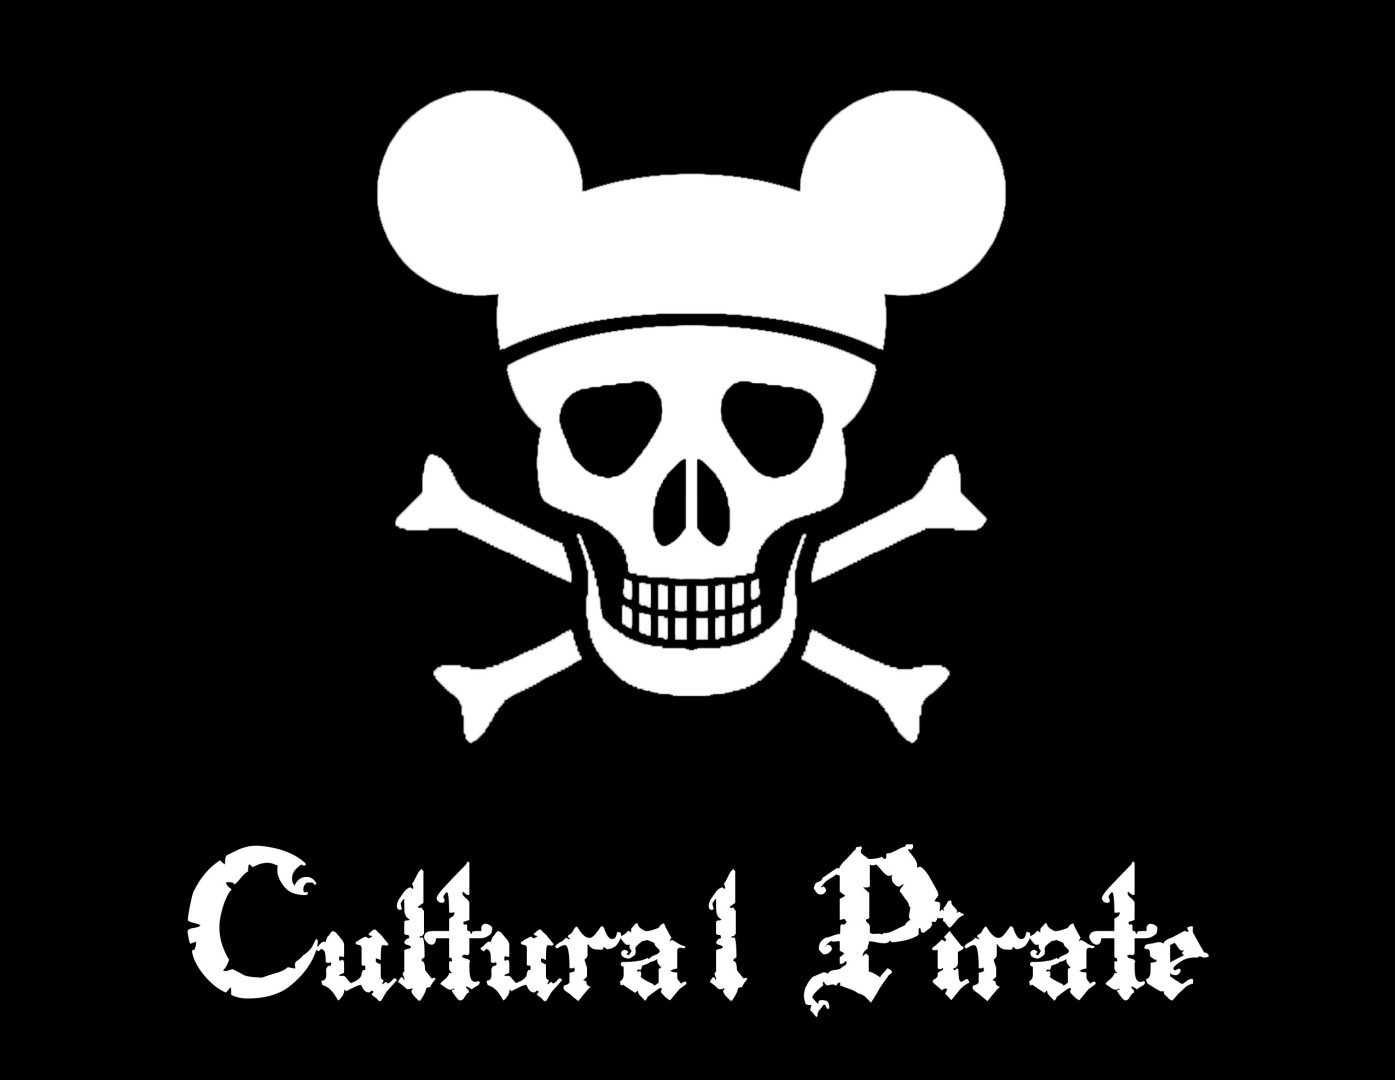 Cultural Pirate: All Rights Ignored.